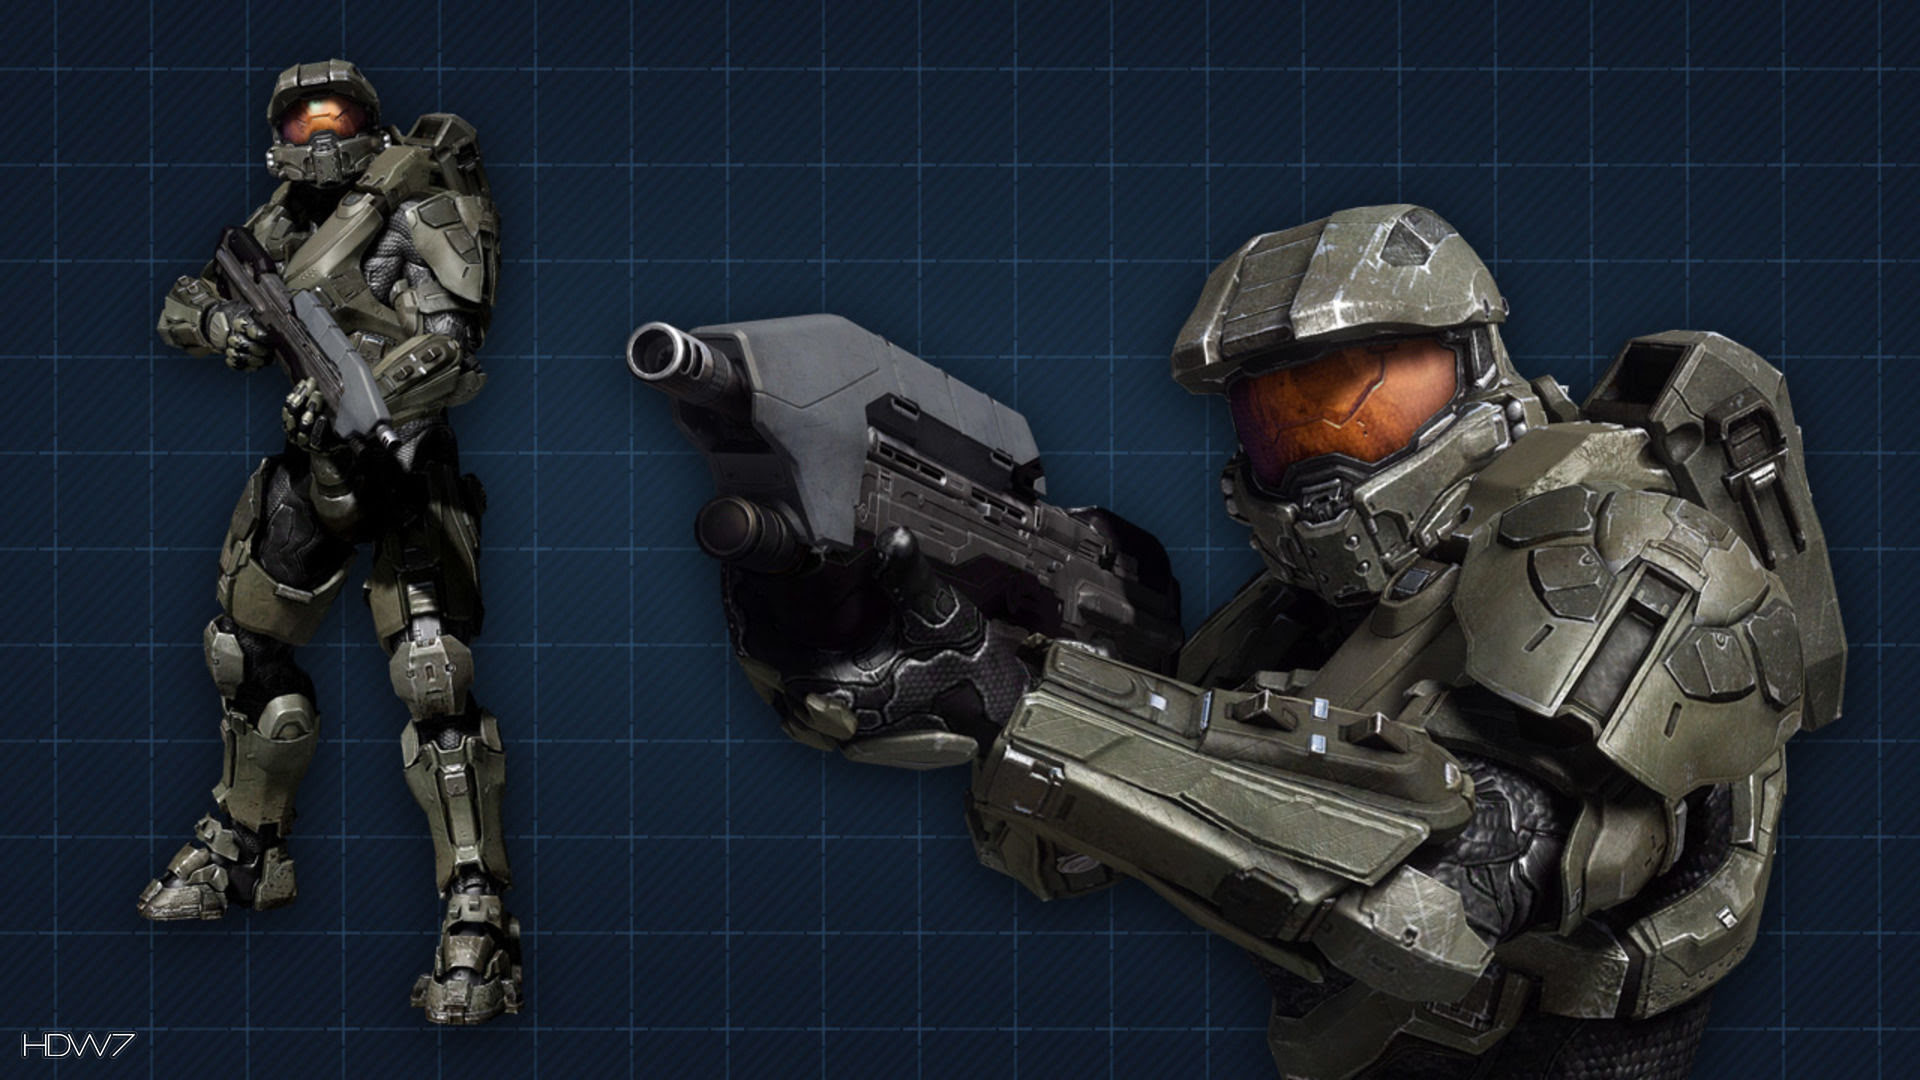 Halo 4 Master Chief Widescreen Hd Wallpaper Hd Wallpaper Gallery